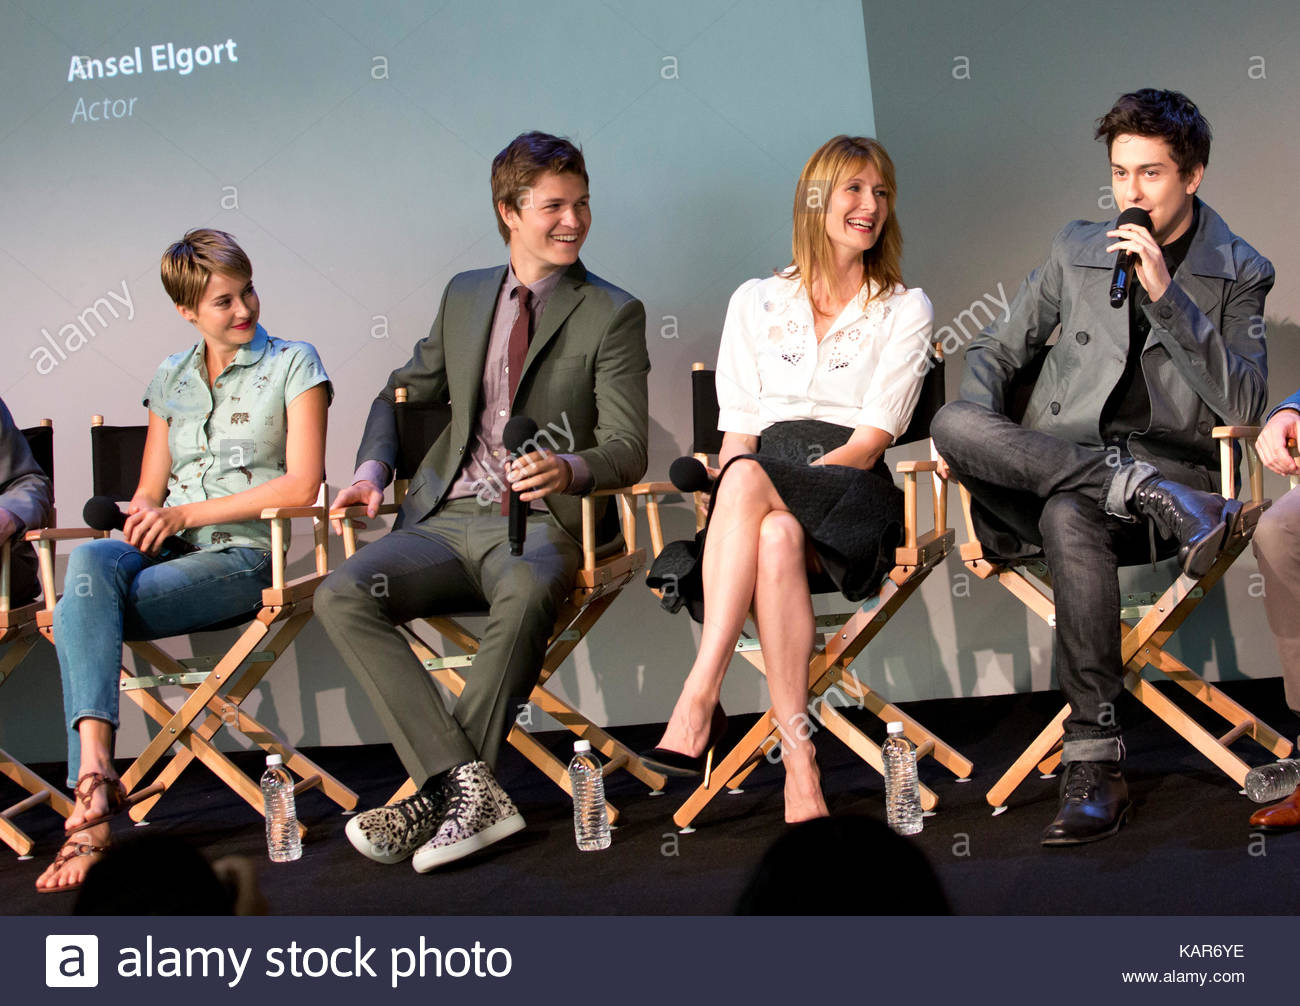 Shailene woodley ansel elgort laura dern nat wolff cast of the shailene woodley ansel elgort laura dern nat wolff cast of the fault in our stars at apple store meet the filmmaker event in ny m4hsunfo